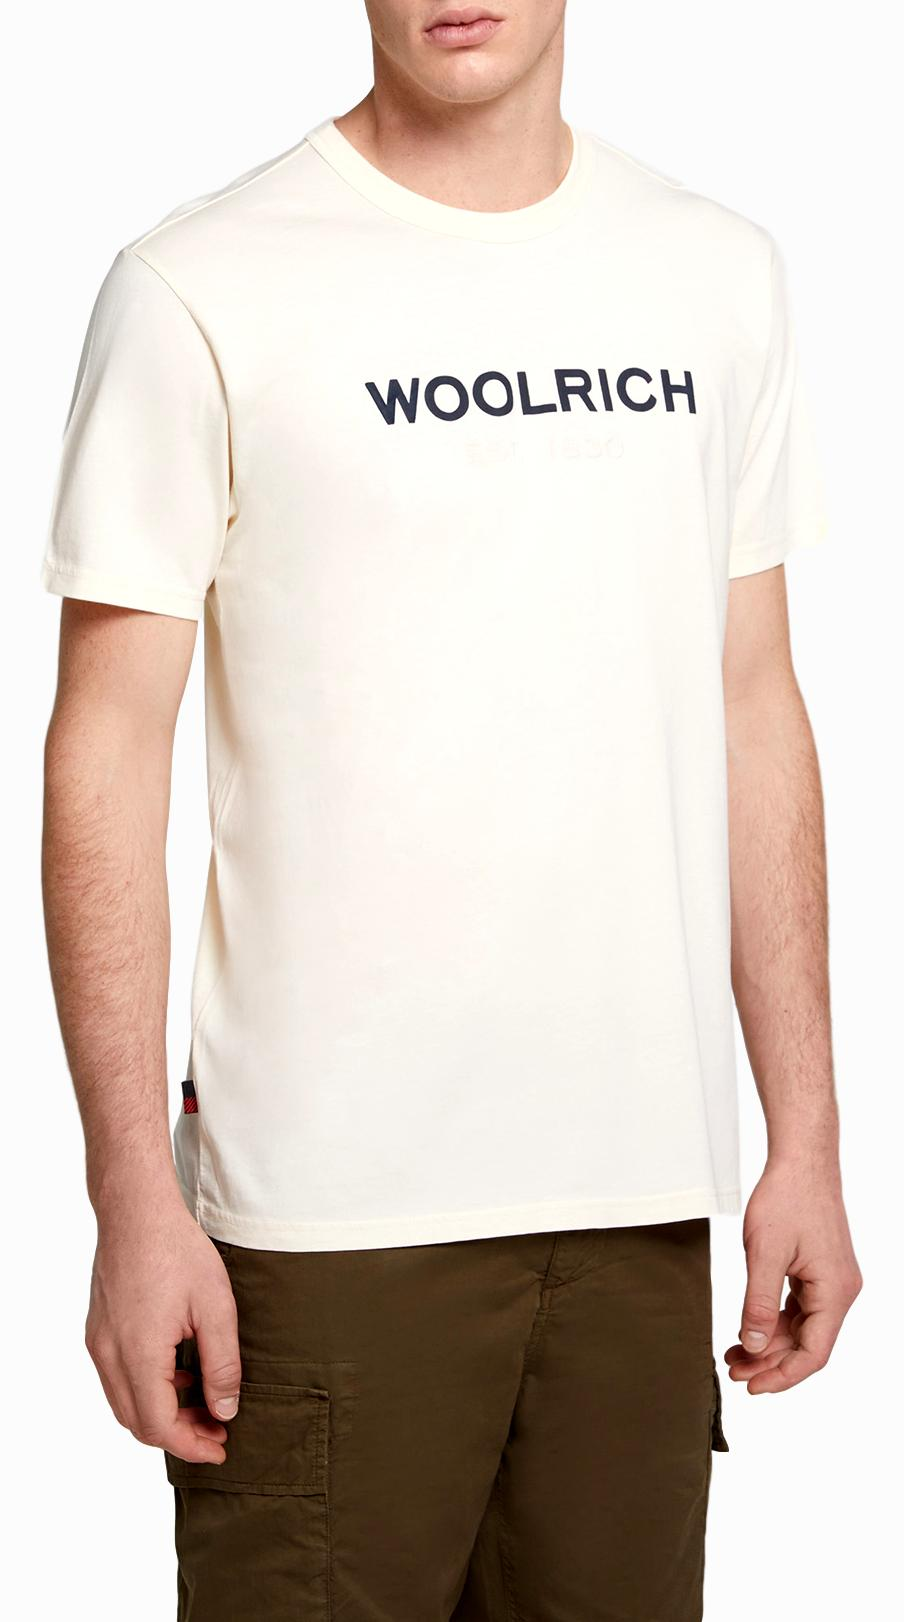 WOOLRICH T SHIRT UOMO Men's Logo T-Shirt Colore: FEATHER WHITE